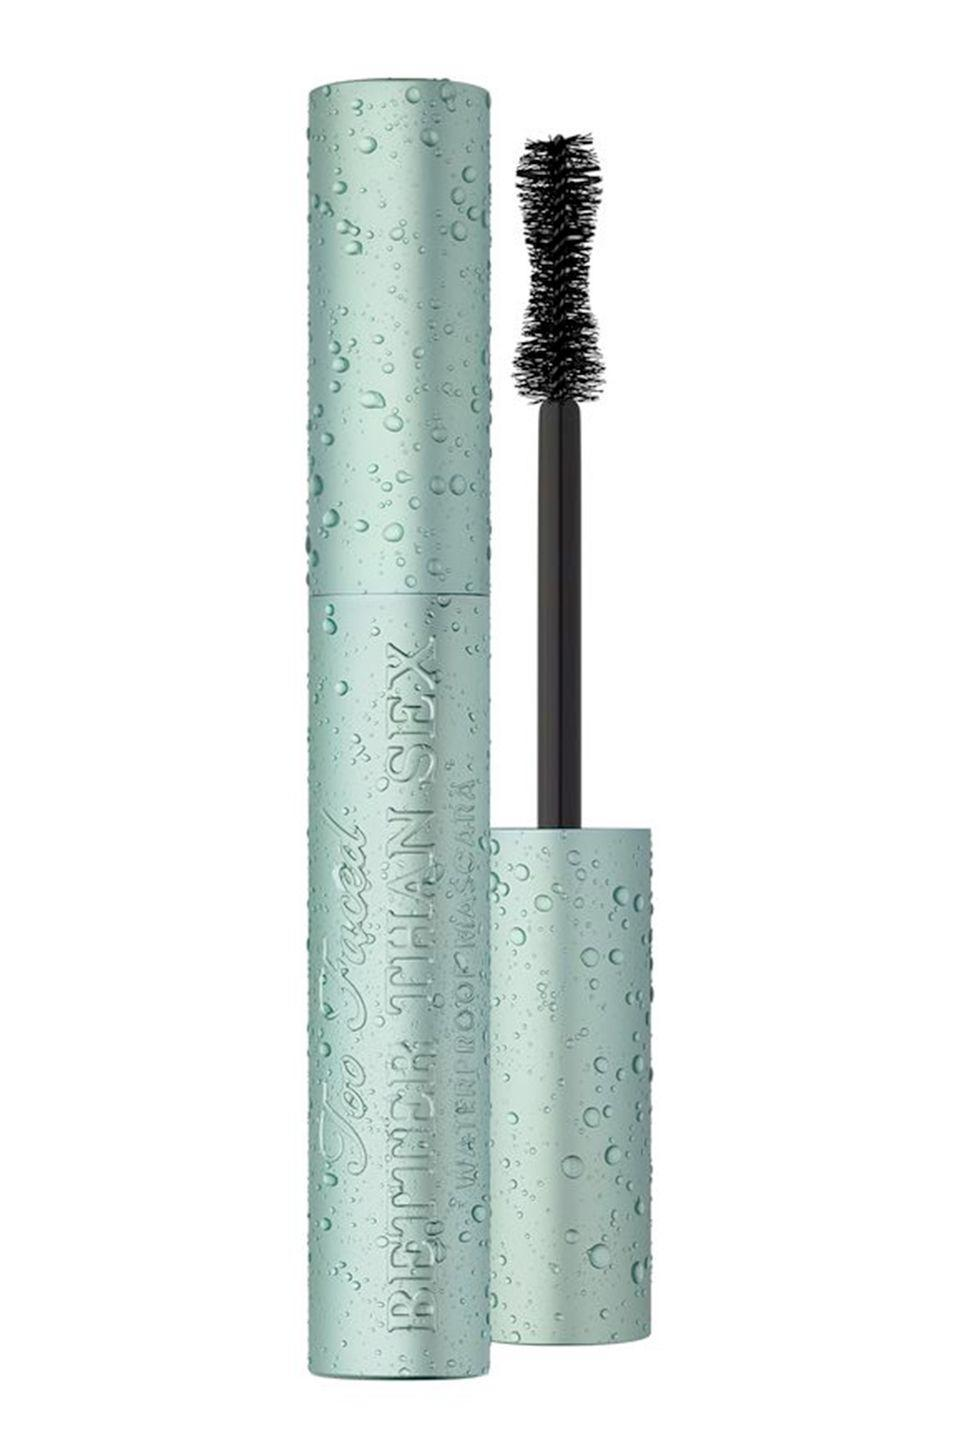 """<p>Remember when Too Faced changed the mascara game for good with Better Than Sex? Well, turns out it <em>is</em> possible to improve upon perfection...How? By making it waterproof. Yup, the Better Than Sex Waterproof gives all the volume, length and curl but with the ridiculous staying power you'd expect from a waterproof formula. </p><p><a href=""""https://www.debenhams.com/webapp/wcs/stores/servlet/prod_10701_10001_154614110899_-1"""" rel=""""nofollow noopener"""" target=""""_blank"""" data-ylk=""""slk:buy now"""" class=""""link rapid-noclick-resp"""">buy now</a><br></p>"""